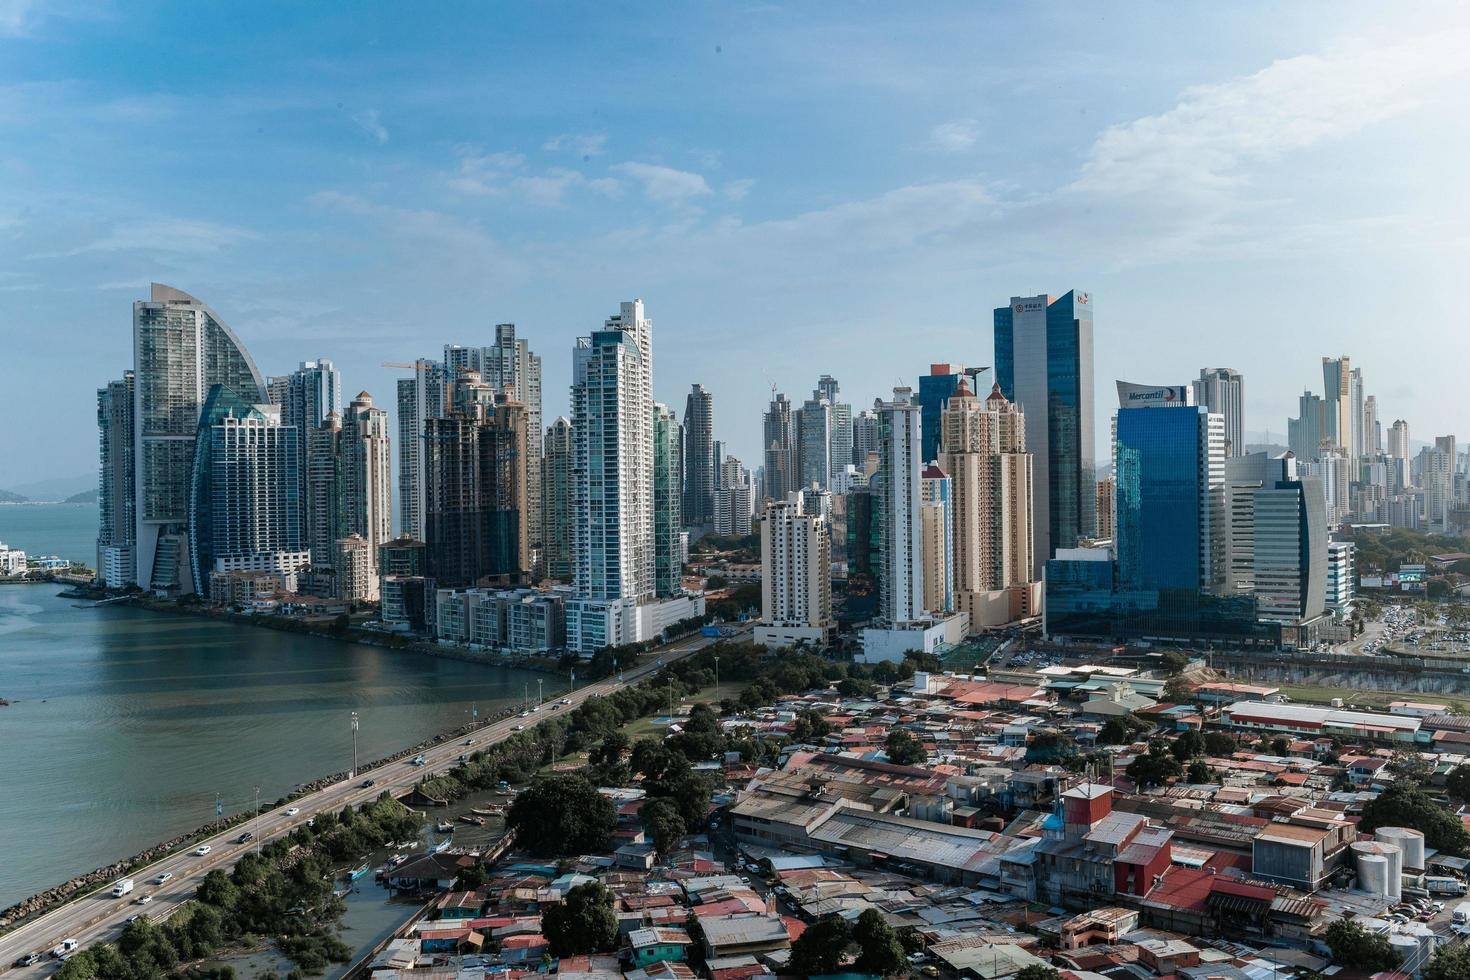 Panama city skyline photo